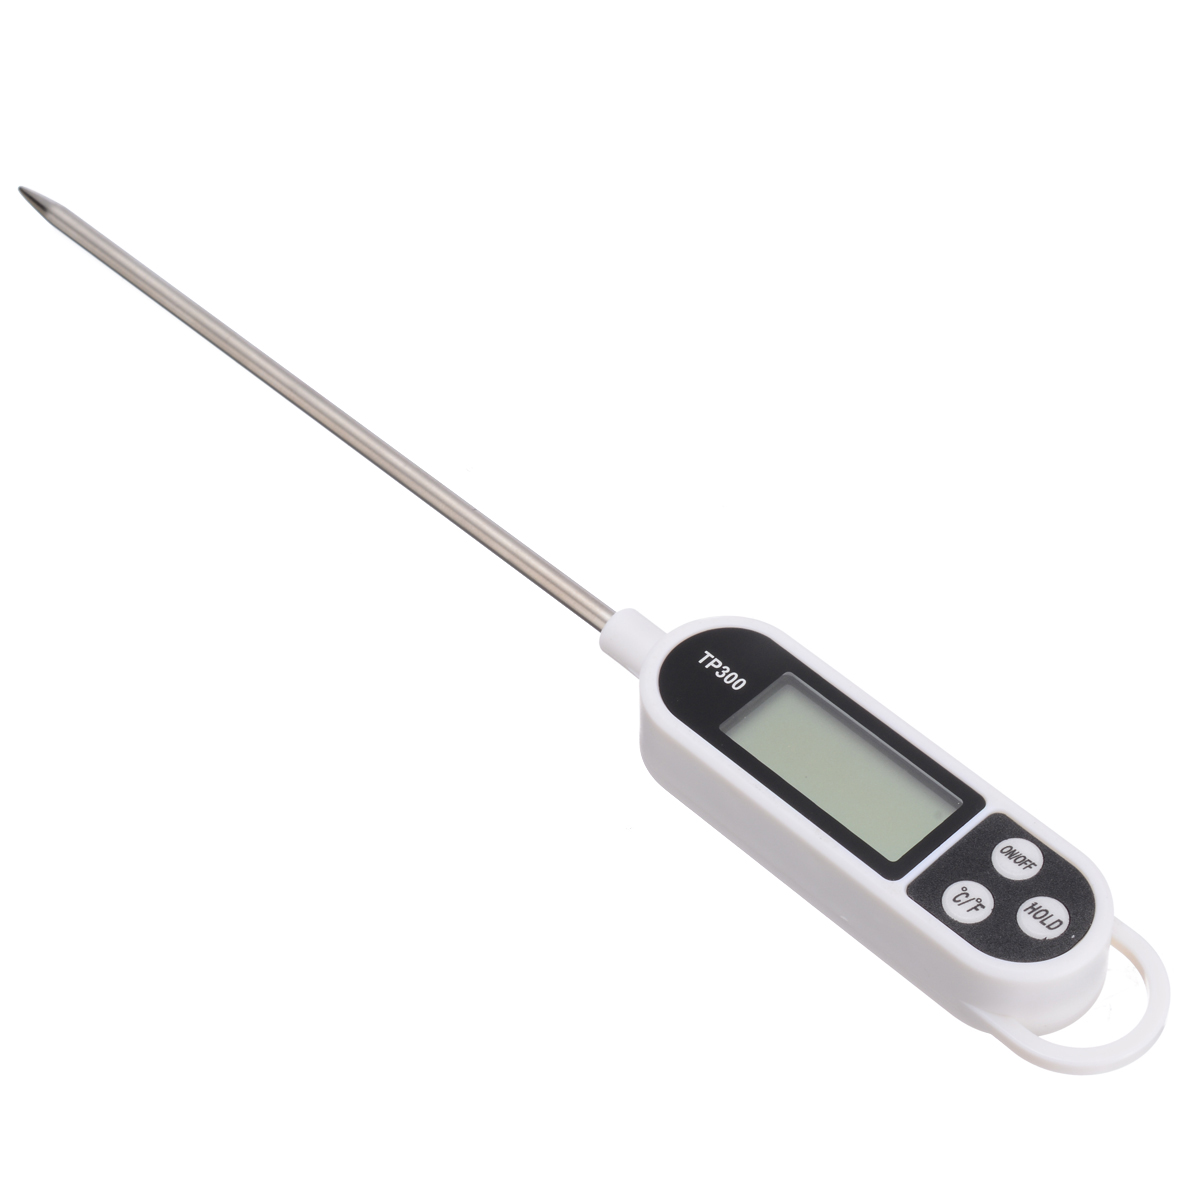 Kitchen Digital BBQ Food Thermometer Meat Cake Fry Grill Dinning Household Cooking Thermometer Gauges With Battery